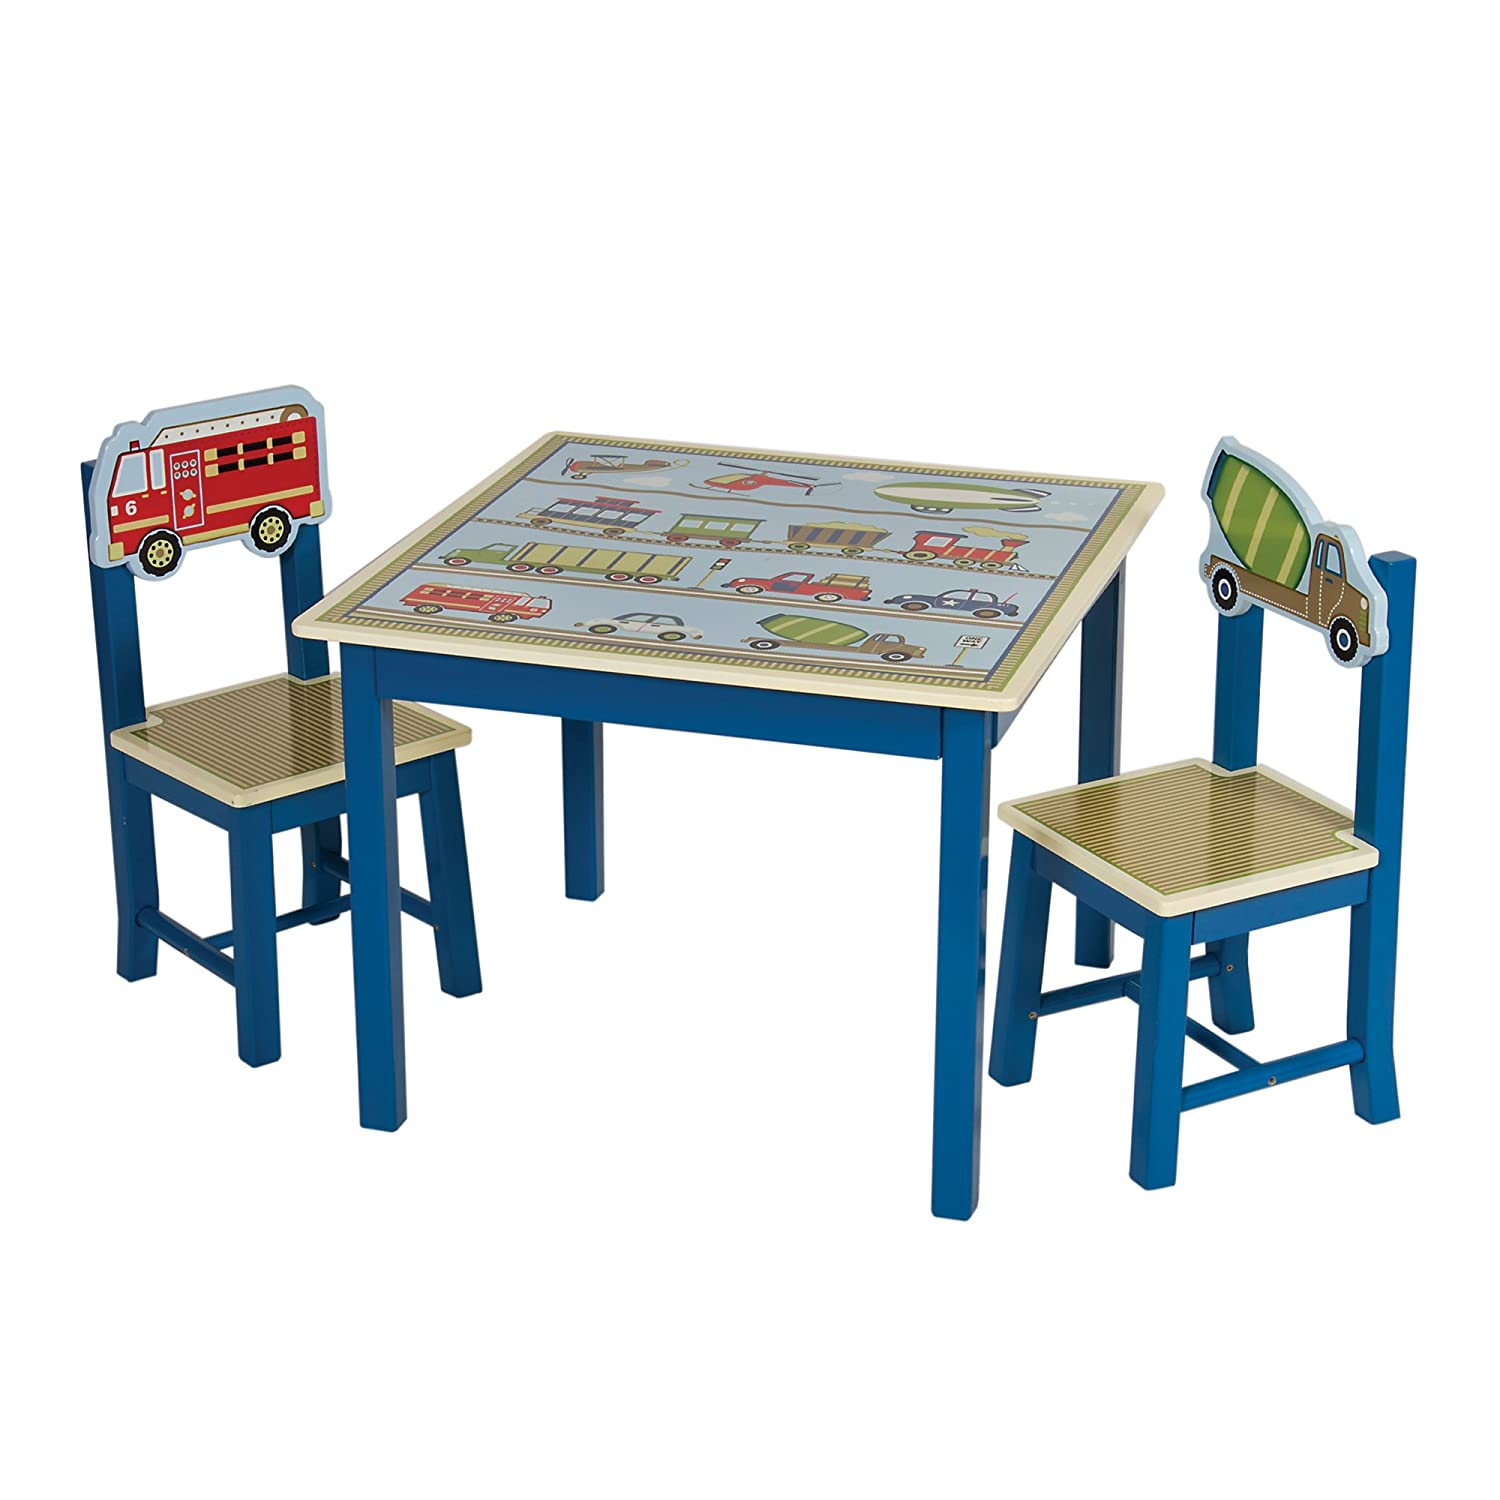 Guidecraft Wood Hand-painted Sailing Table & Chairs Set - Kids Study & Activity Table - Preschool Furniture G88202